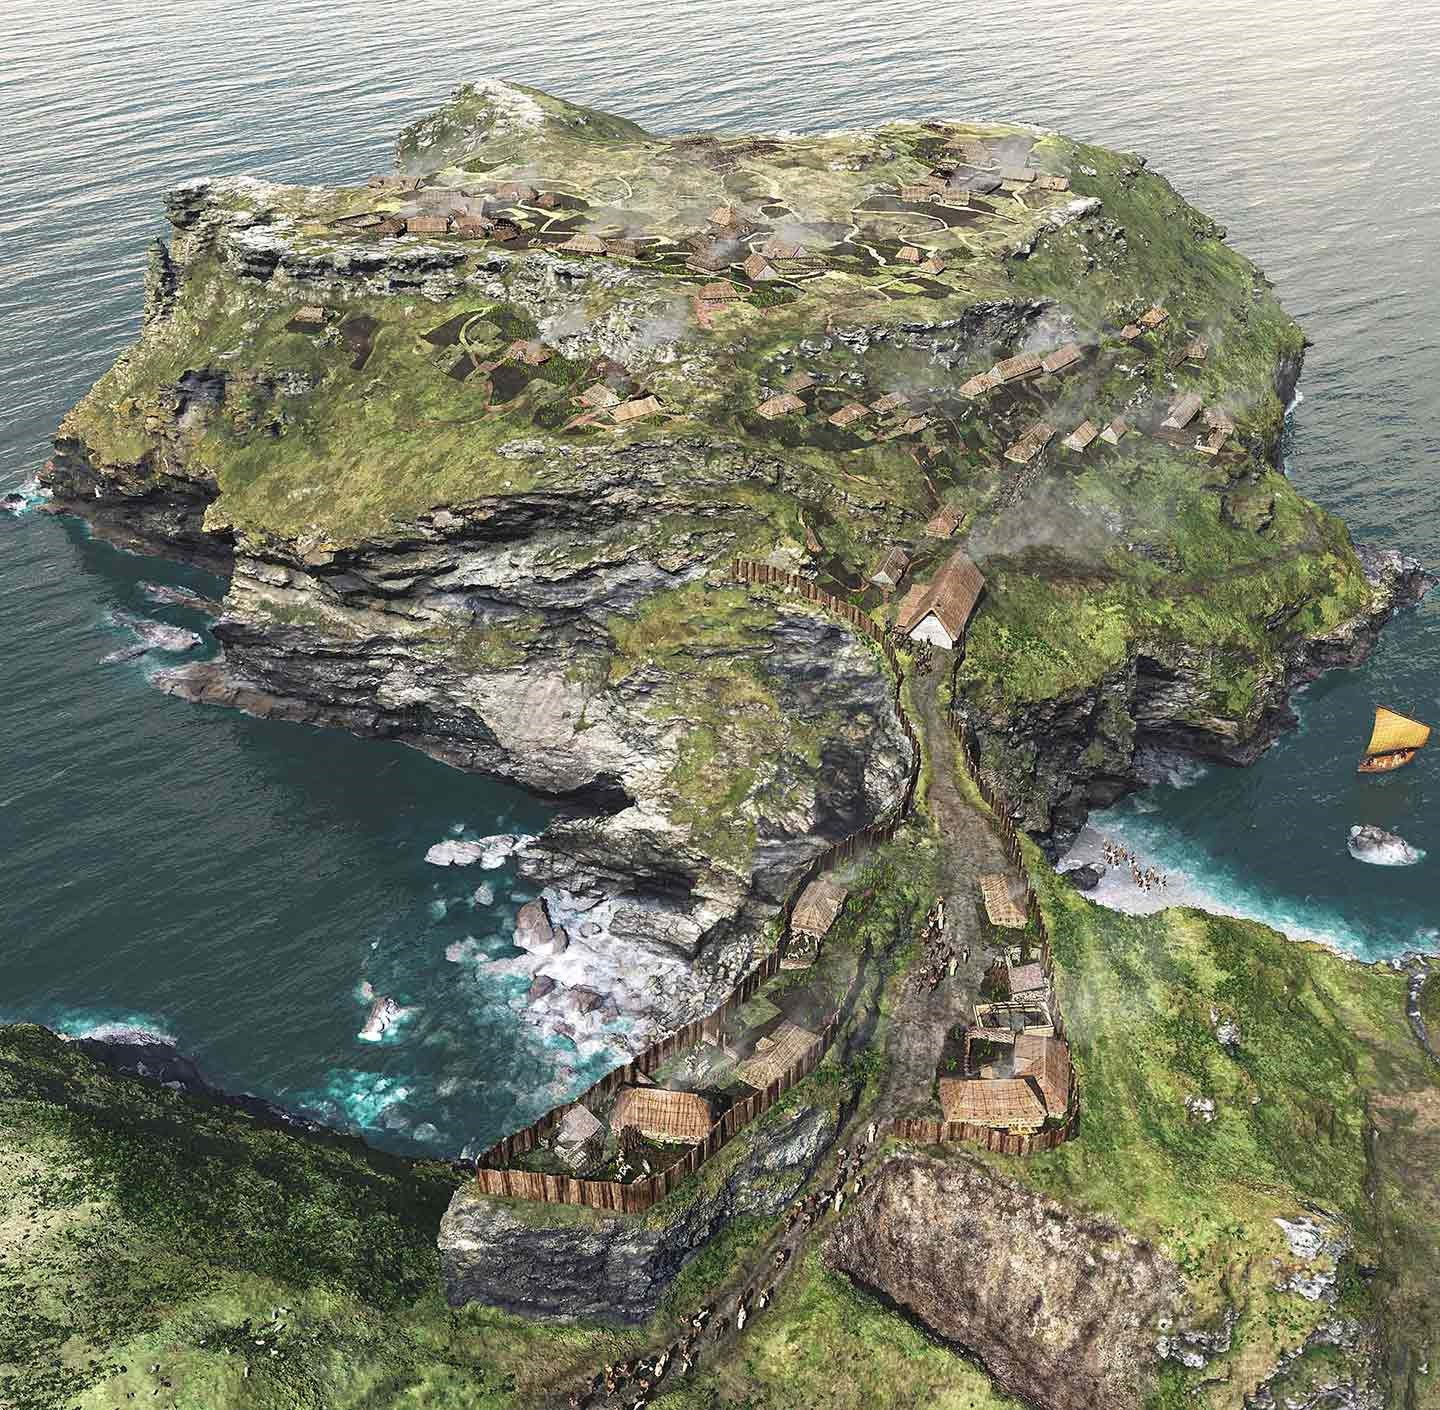 A reconstruction of Tintagel as it may have looked in about 700, showing the island dotted with simple houses